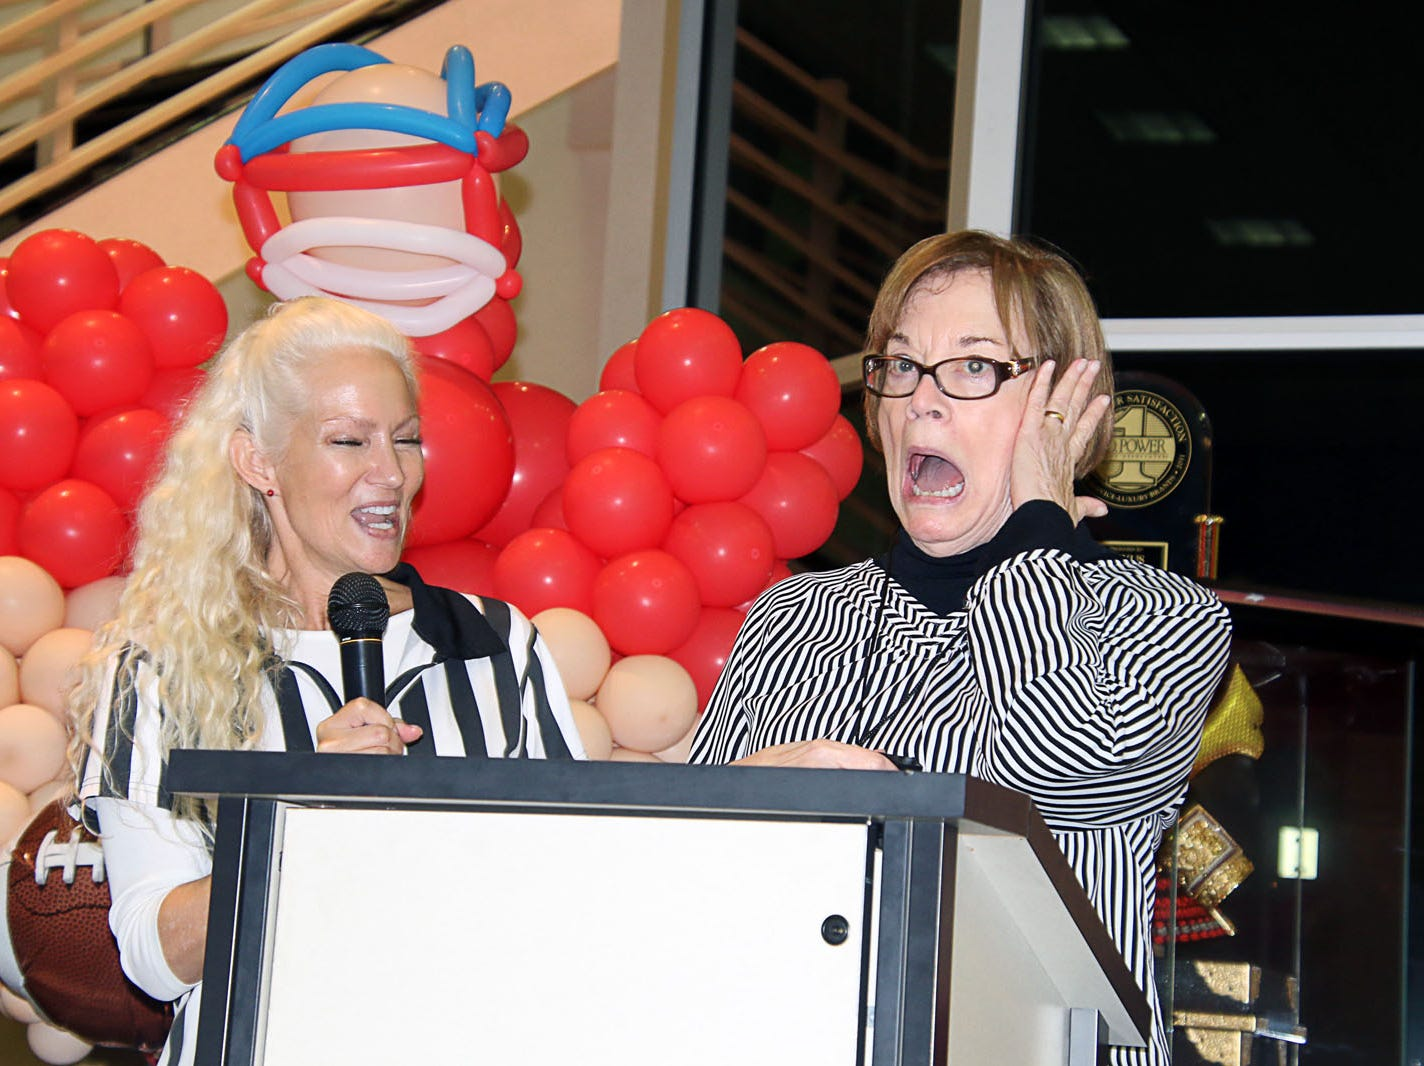 Voices for Children volunteer Kip Lyman, left, and Fort Pierce Mayor Linda Hudson react to the event's opening whistle at the Ultimate Tailgate Party on Jan. 26 at Treasure Coast Lexus.